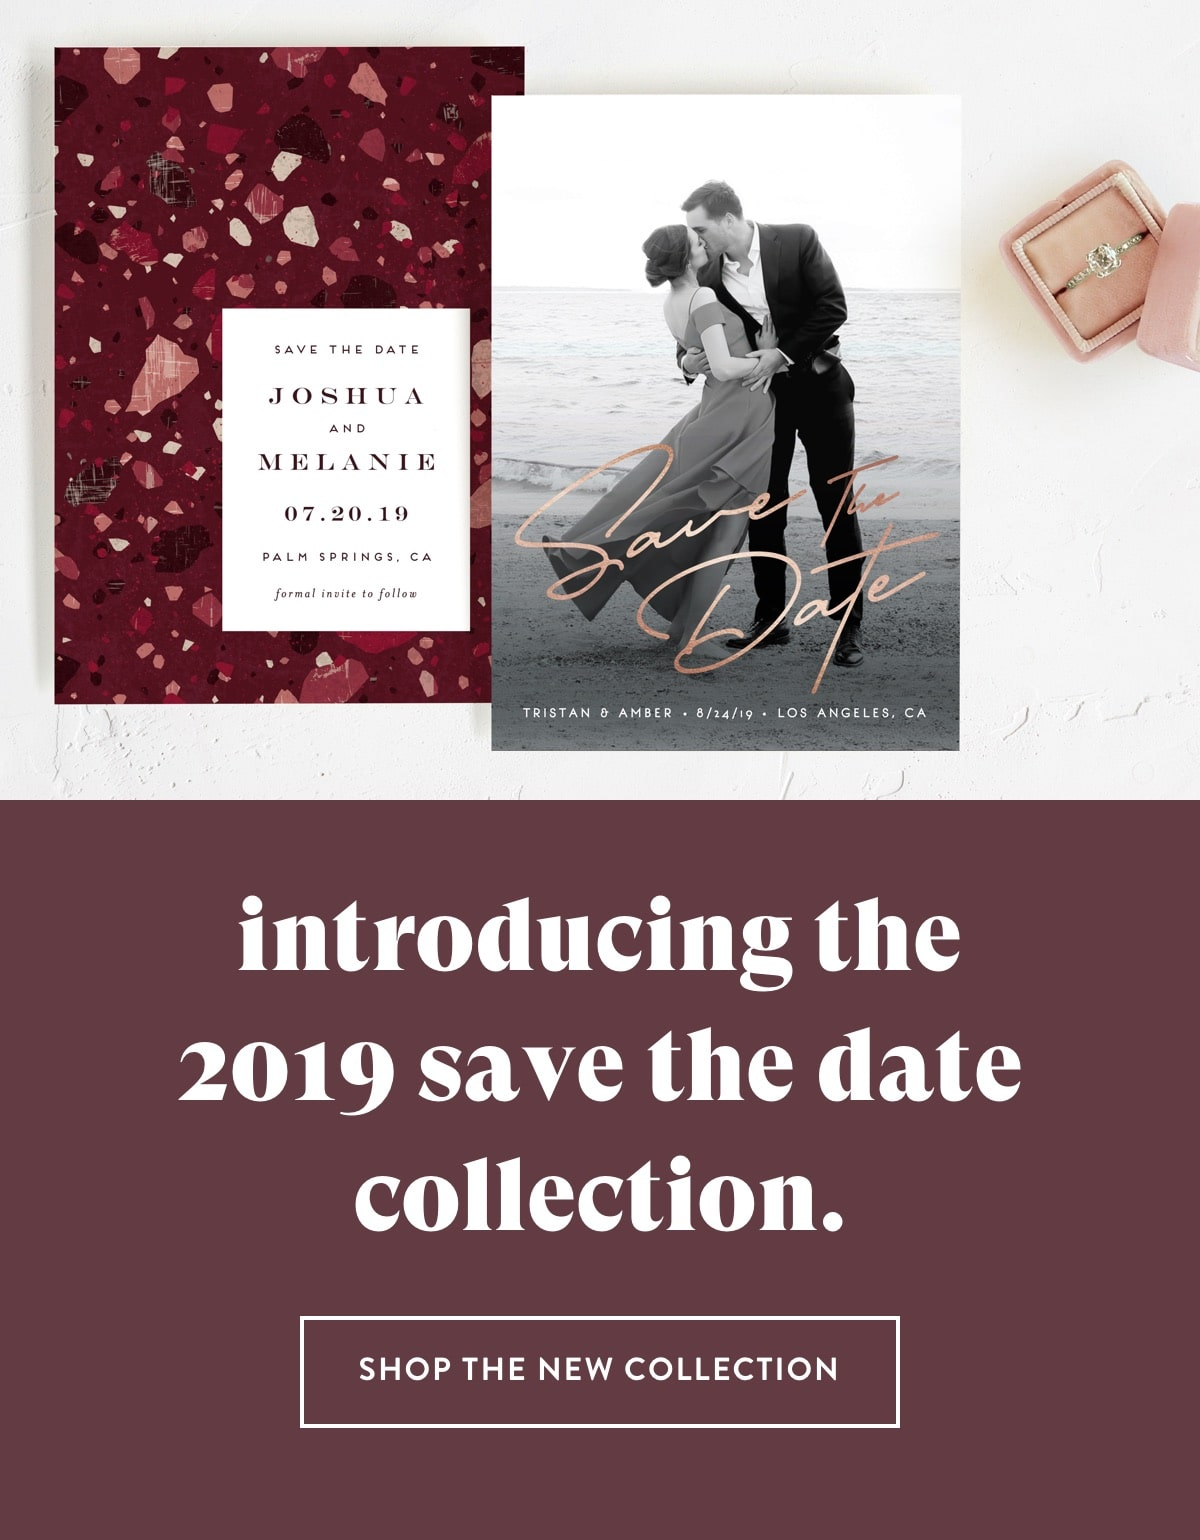 Shop the 2019 Save the Date Collection